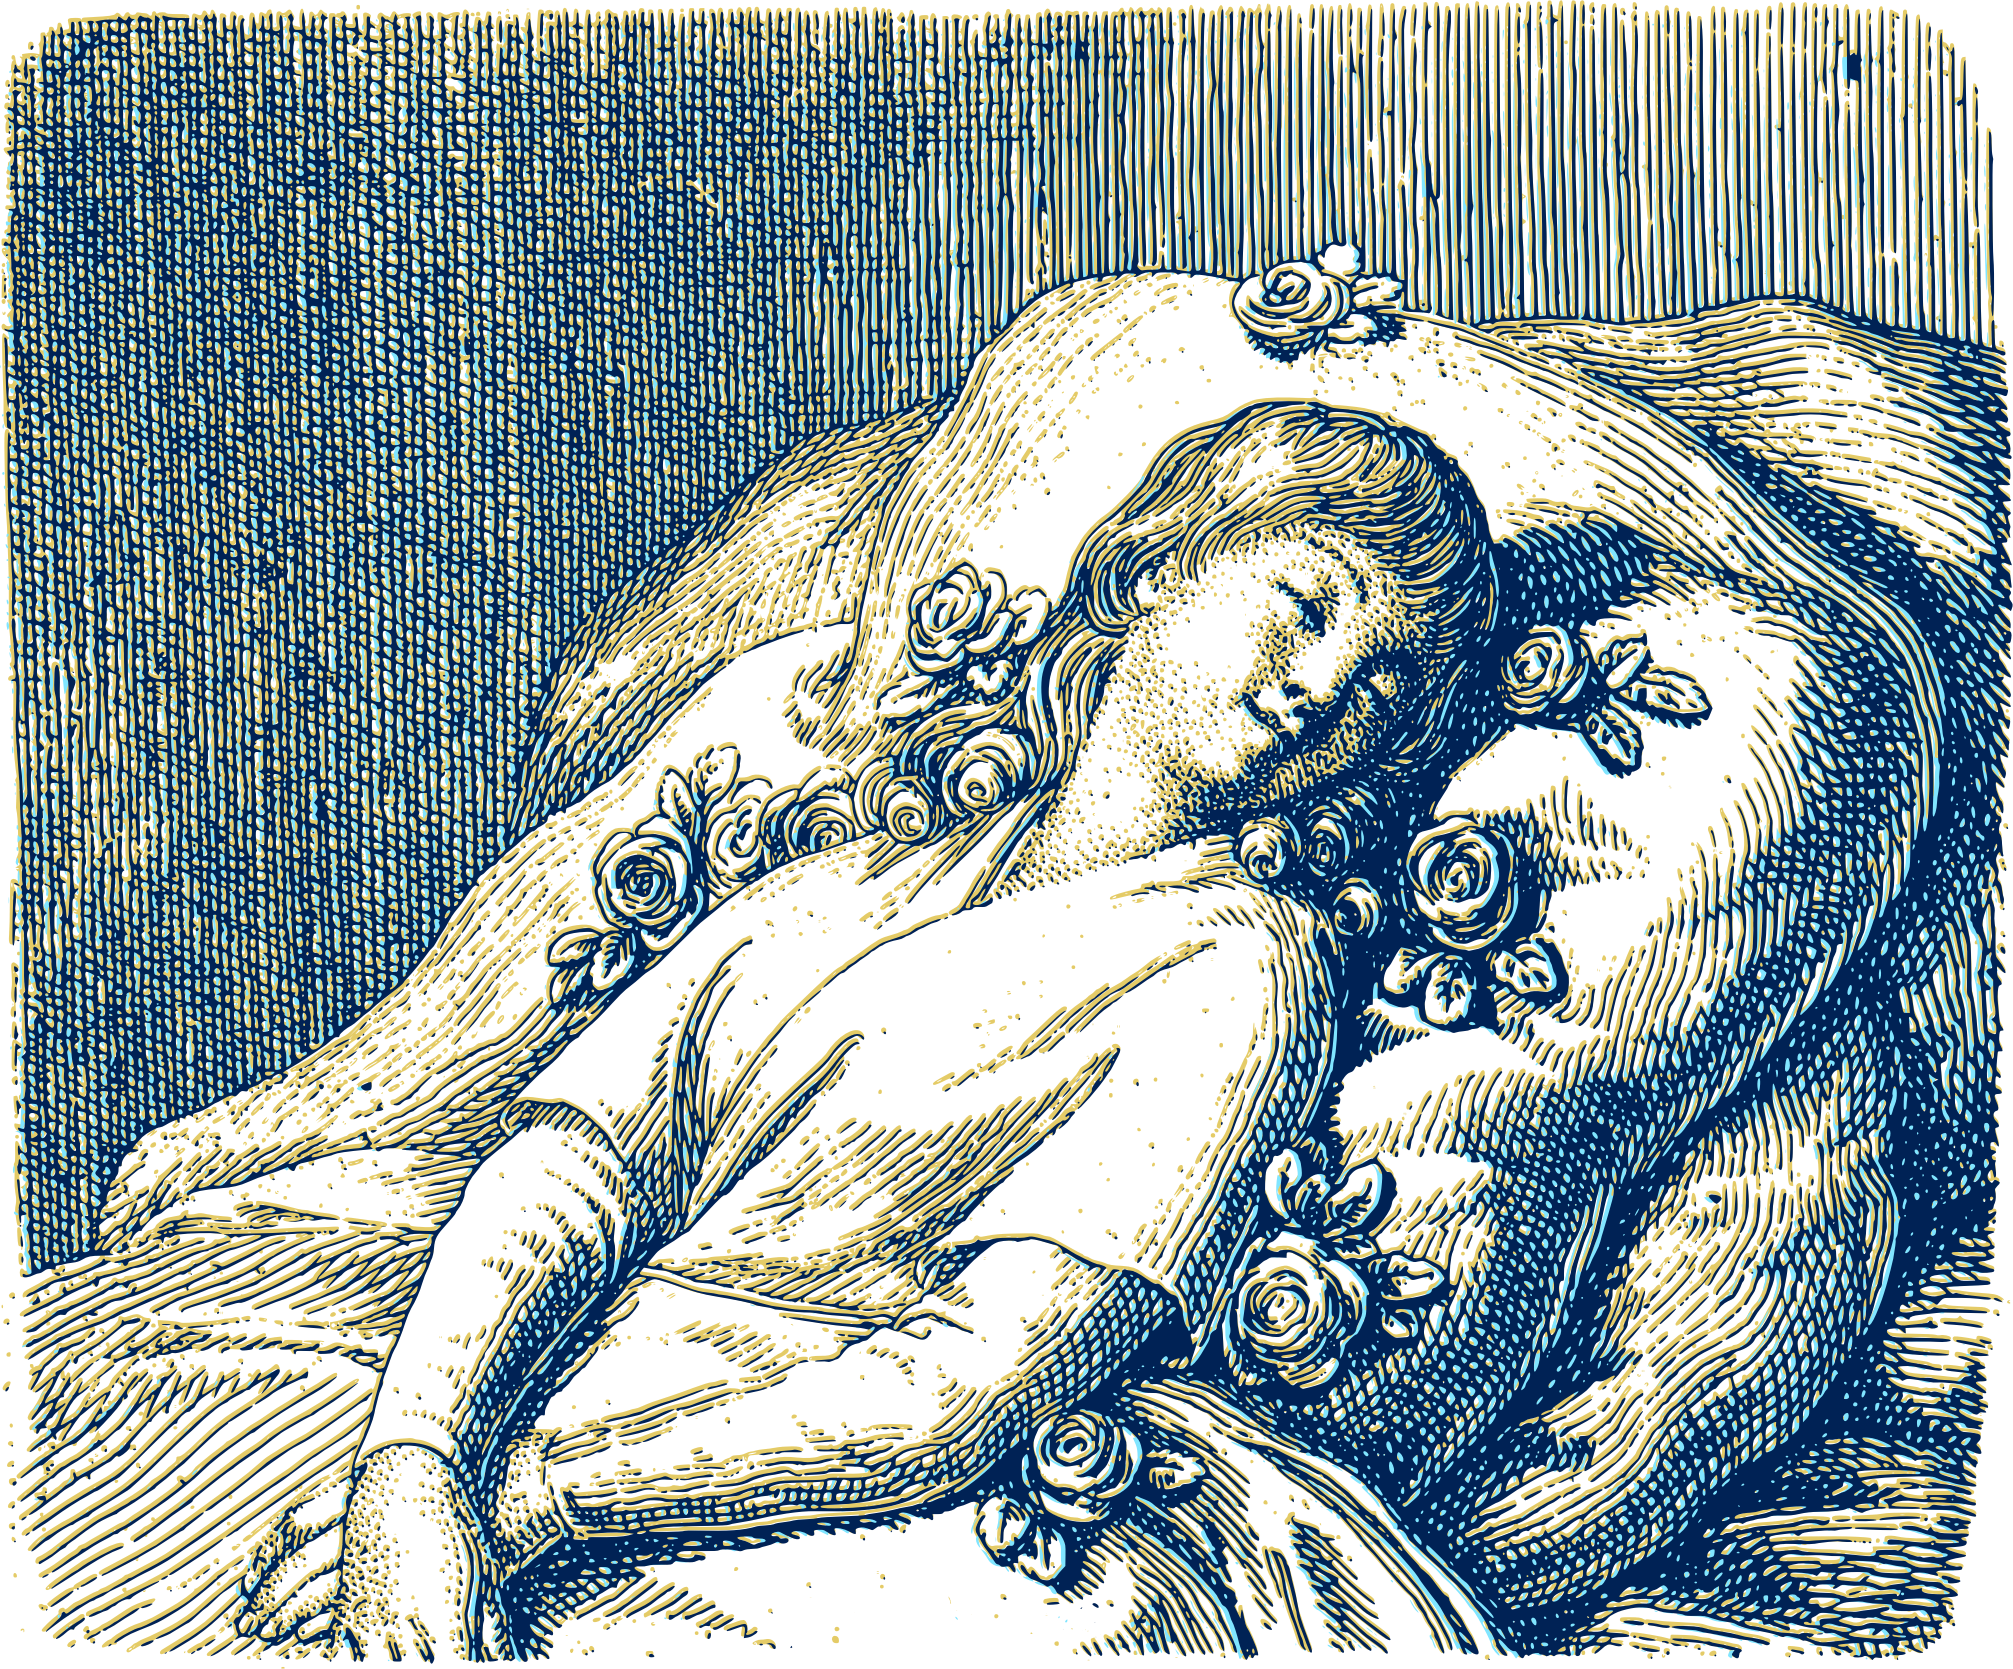 Young woman sleeping 02 by Karolus_BR